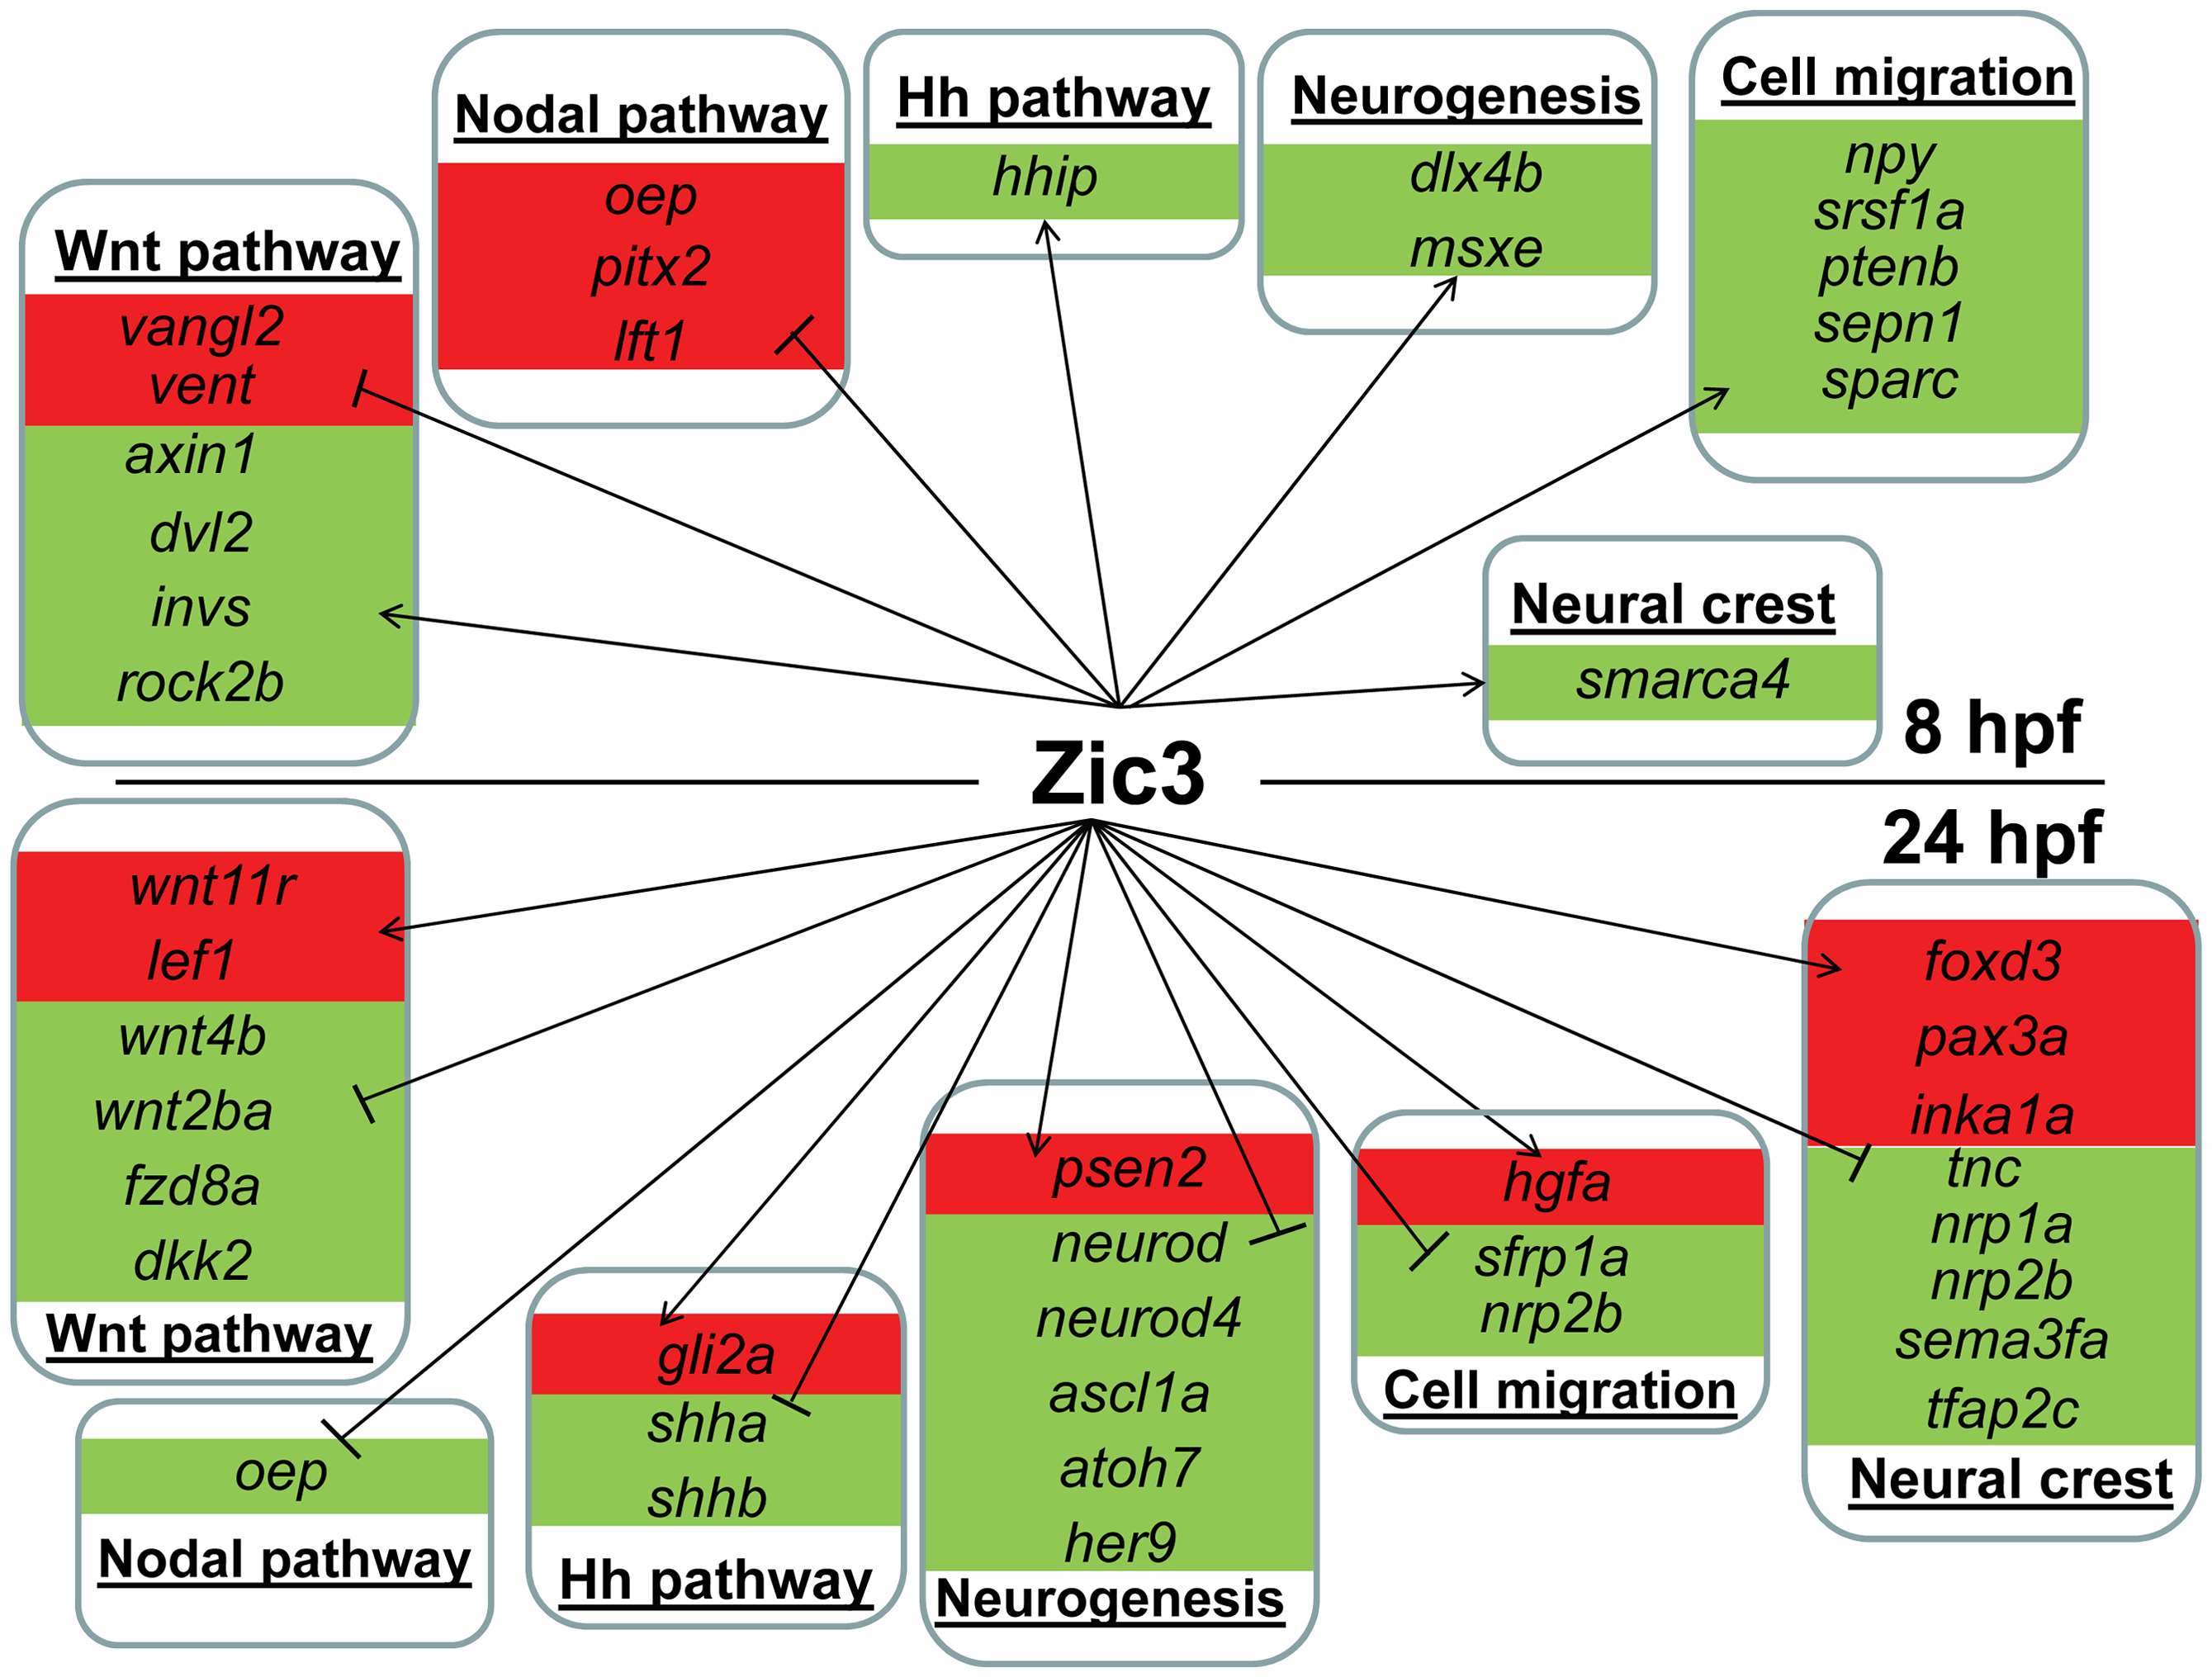 Candidate target genes regulated by Zic3 at 8 hpf and 24 hpf developmental stages.